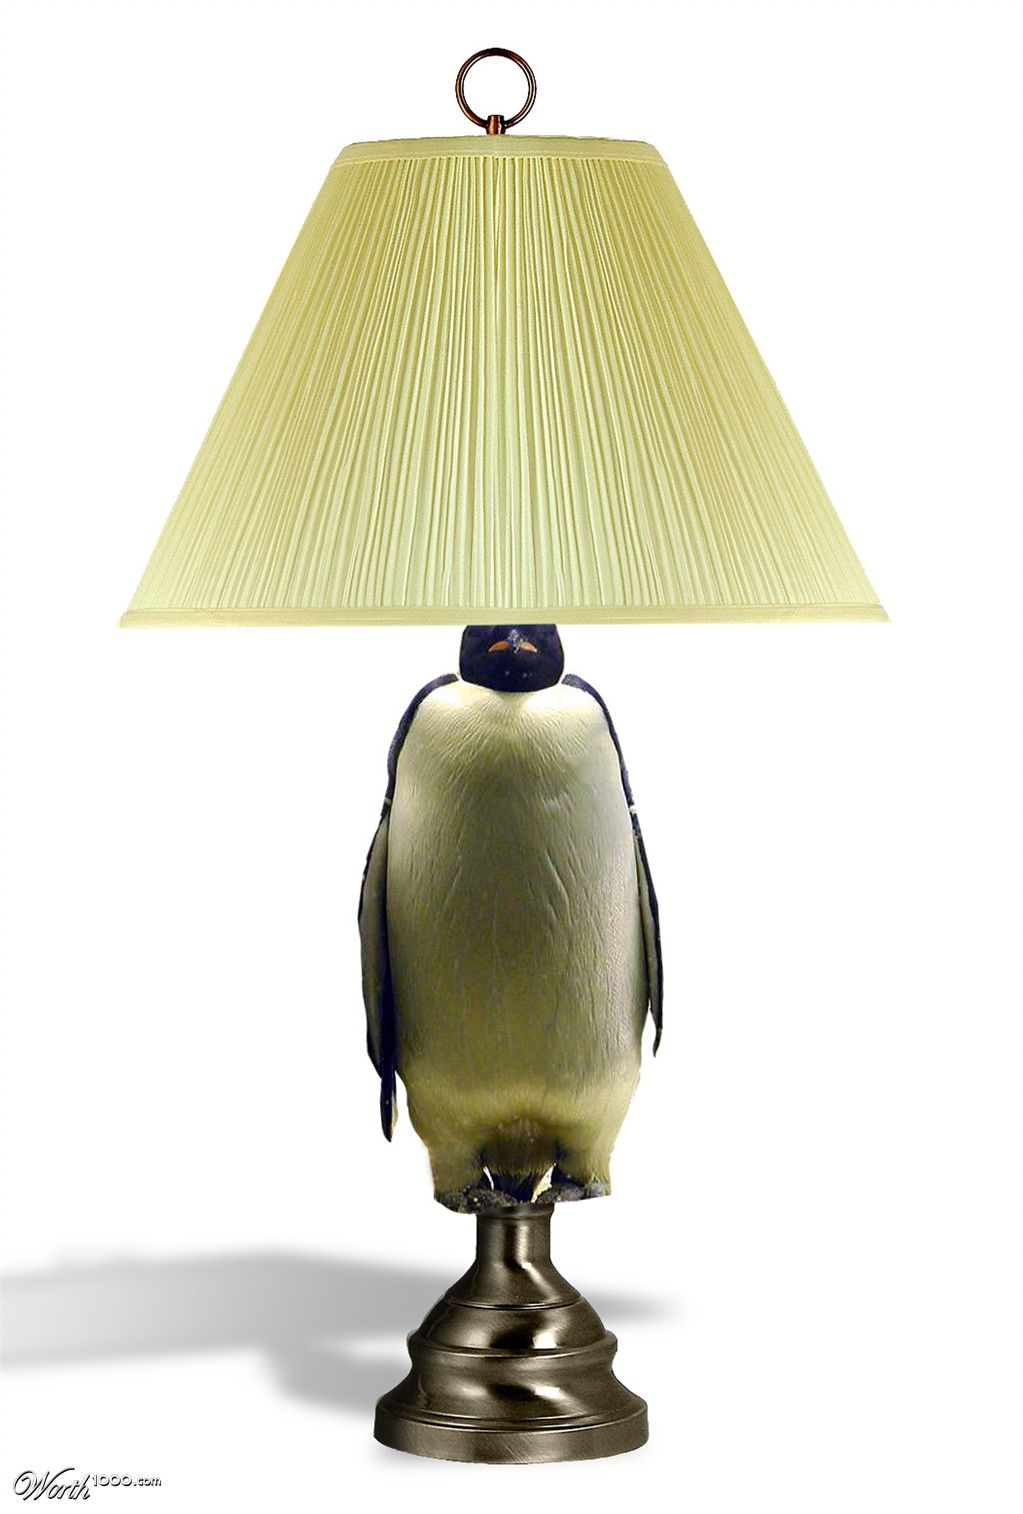 Penguin Lamp   Worth1000 Contests